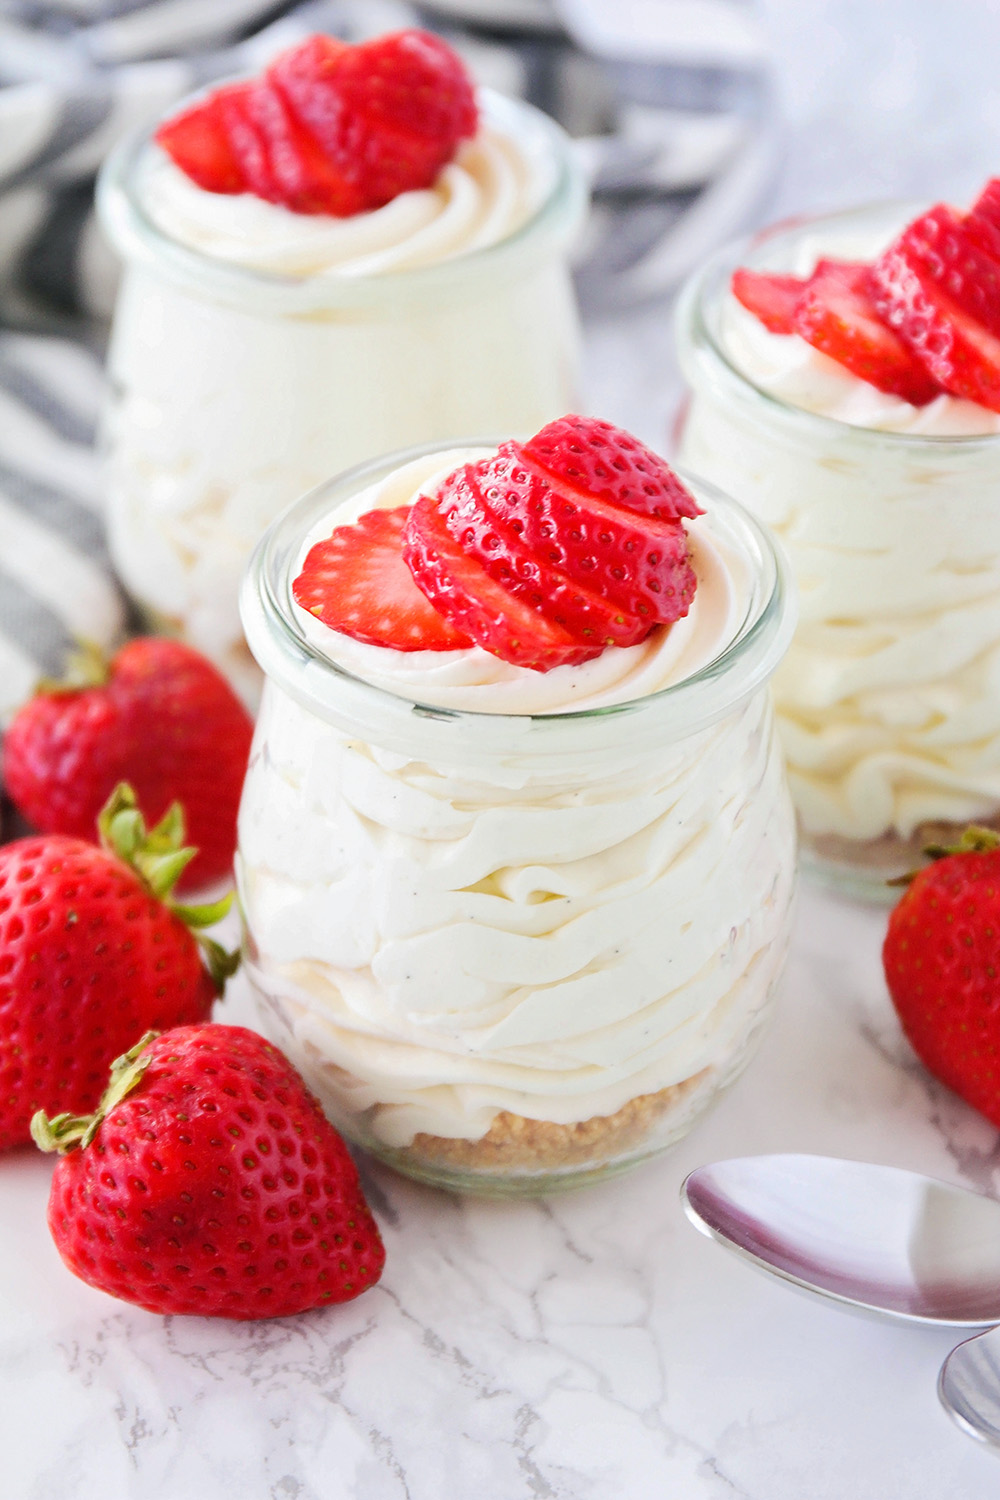 This homemade vanilla cheesecake mousse is so luscious and silky smooth. All the taste of cheesecake, without any of the work!